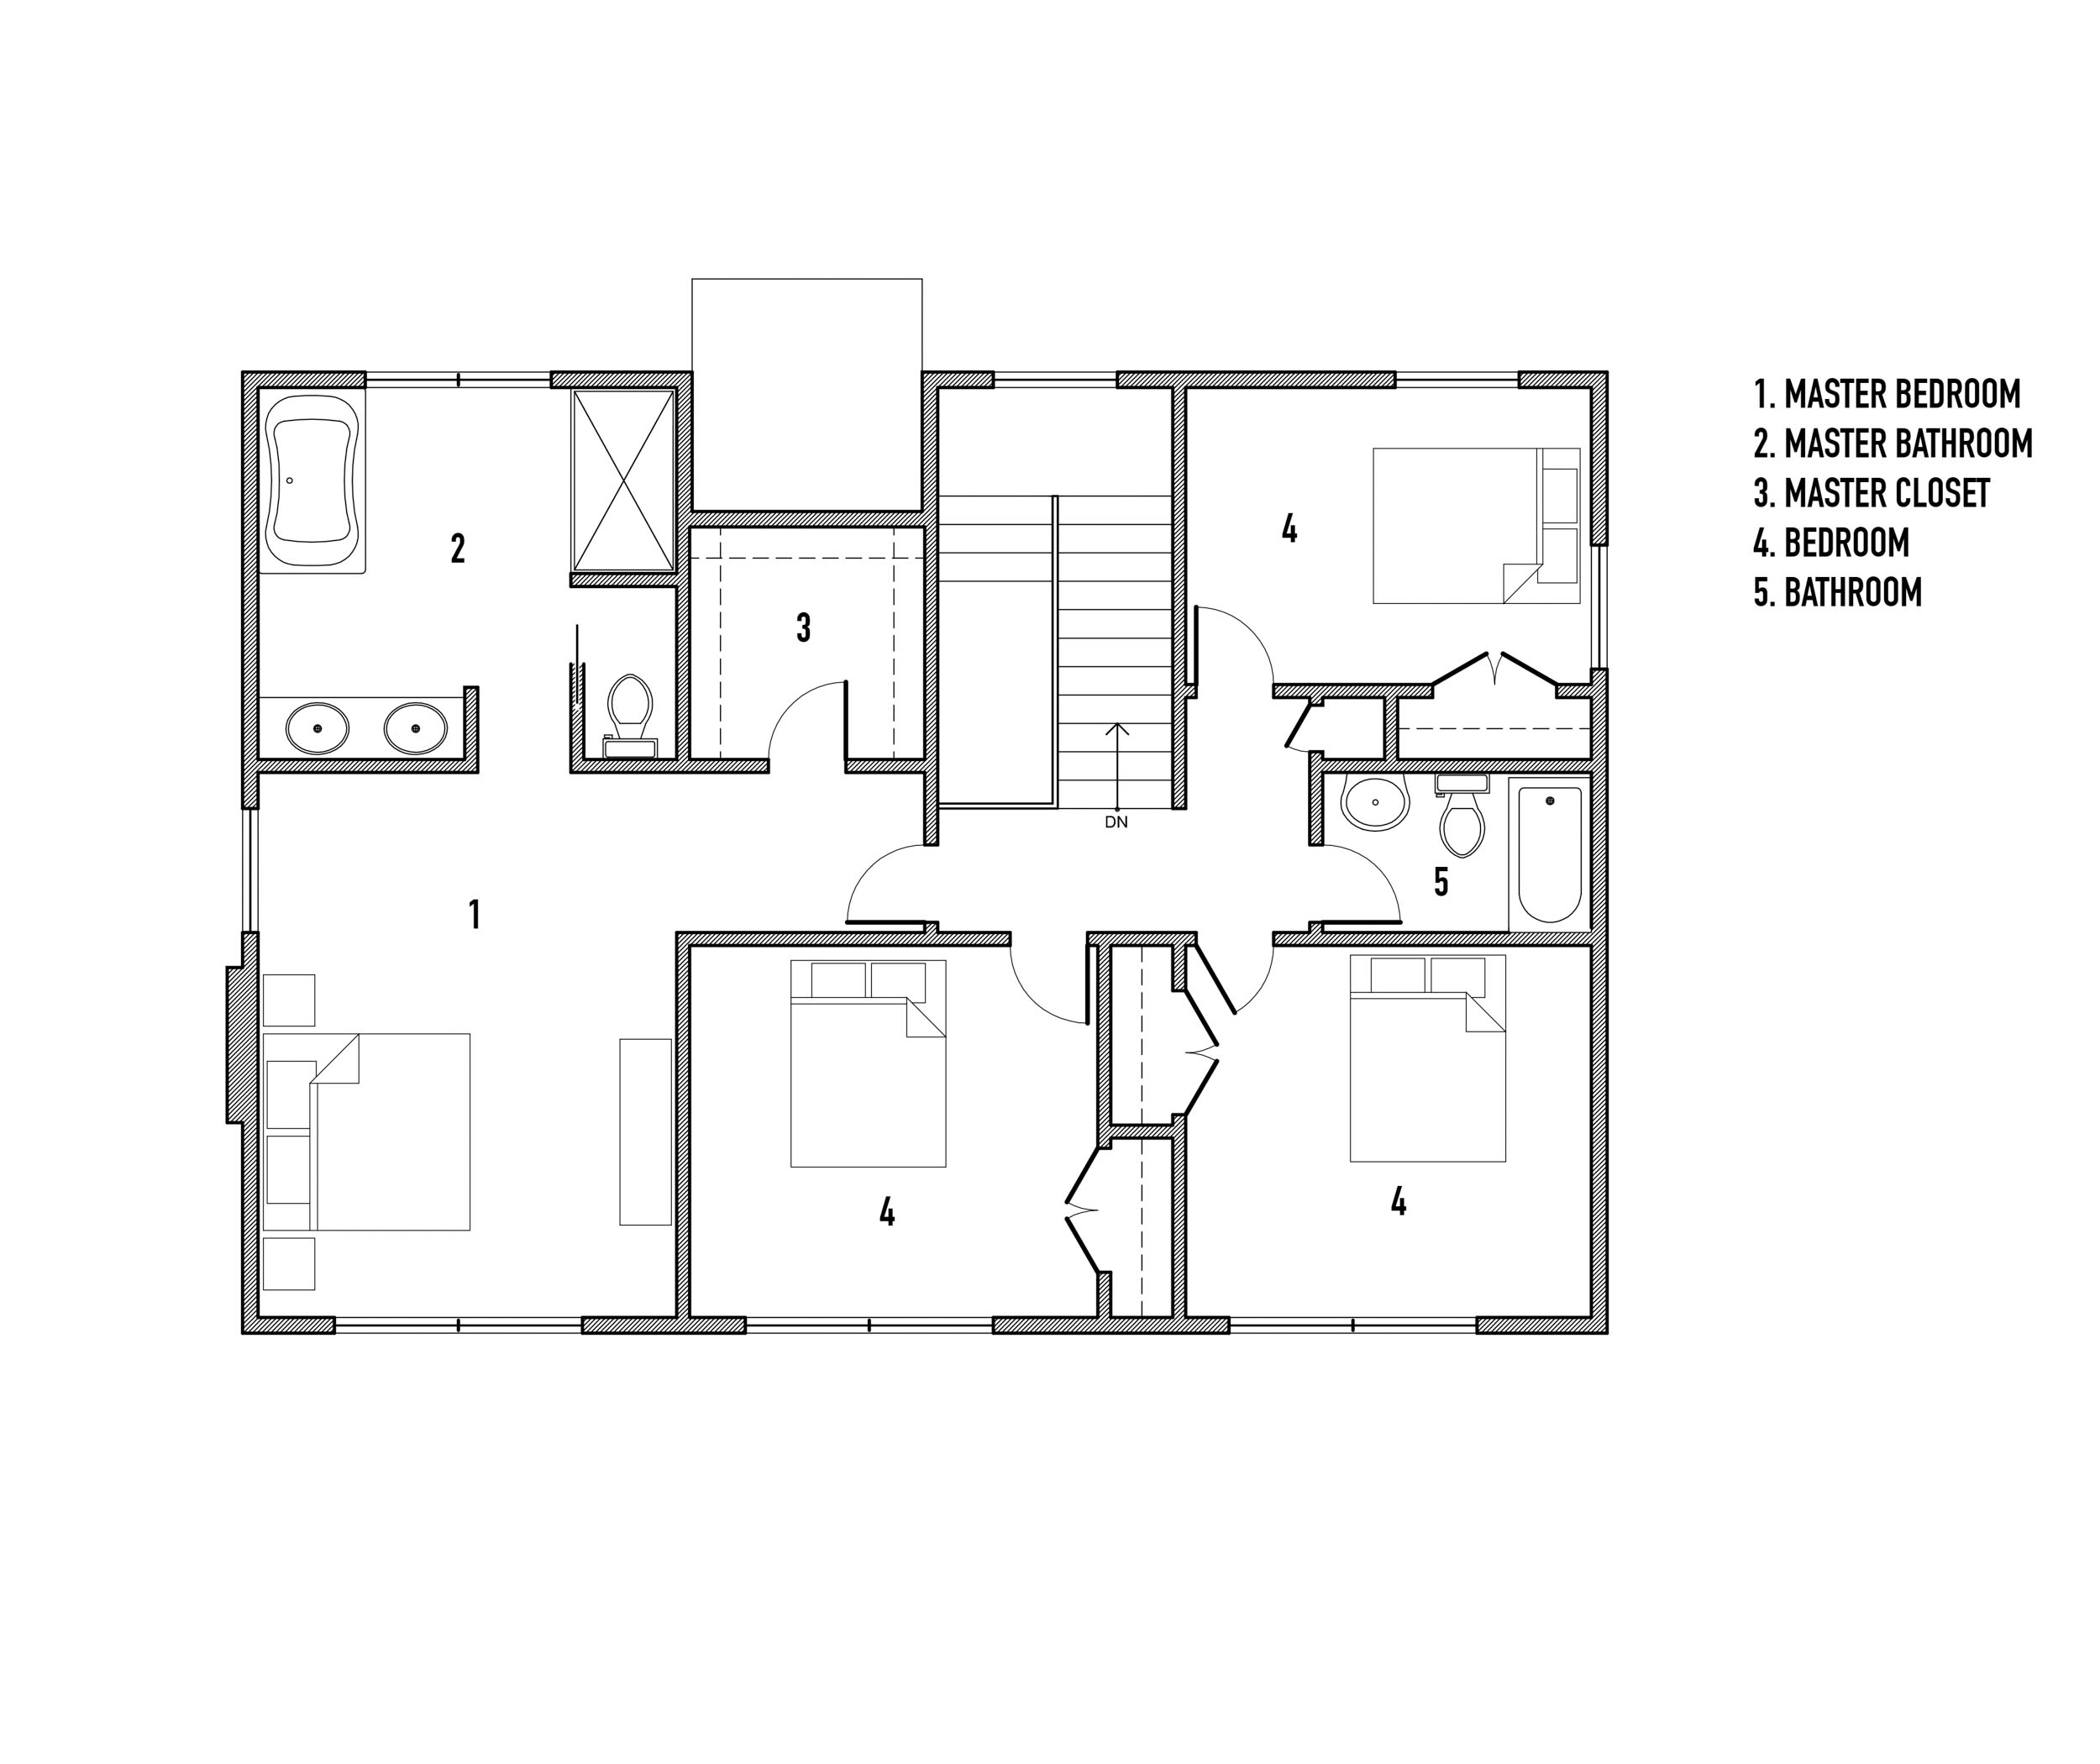 wc-studio-bellingham-bay-house-second-floor-plan.jpg